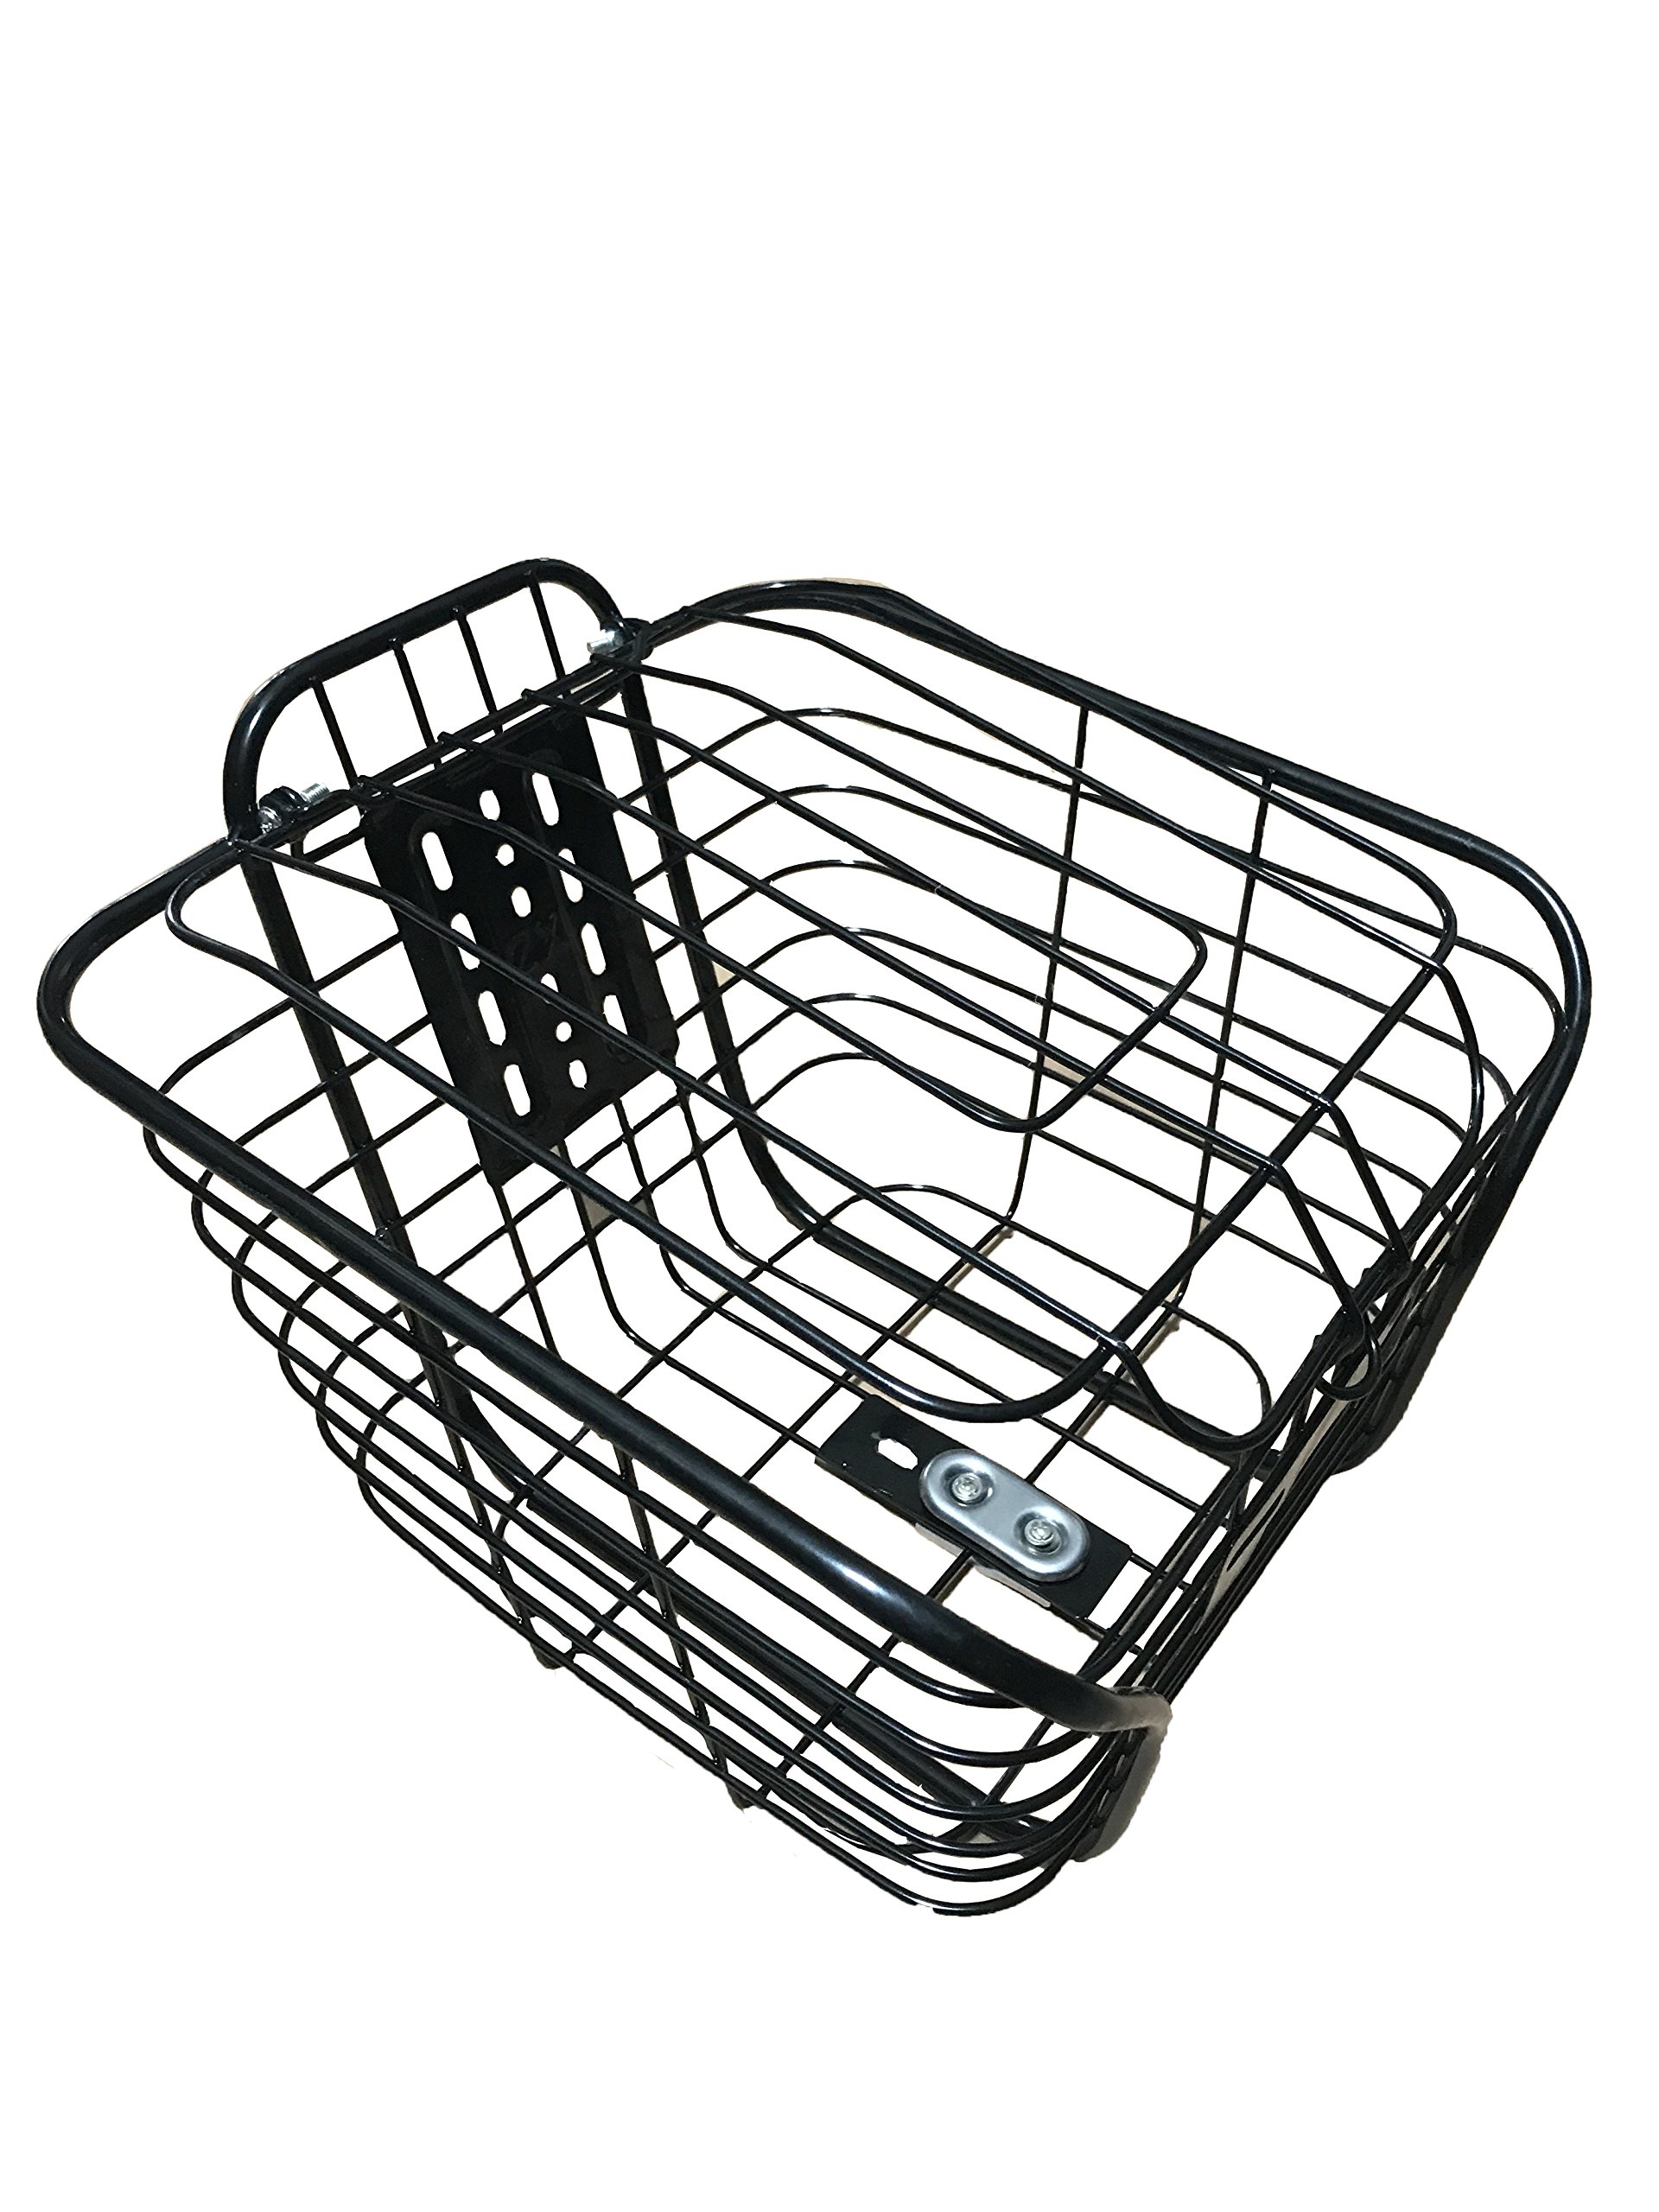 RMB Wire Basket with folding lid by RMB EV (Image #2)